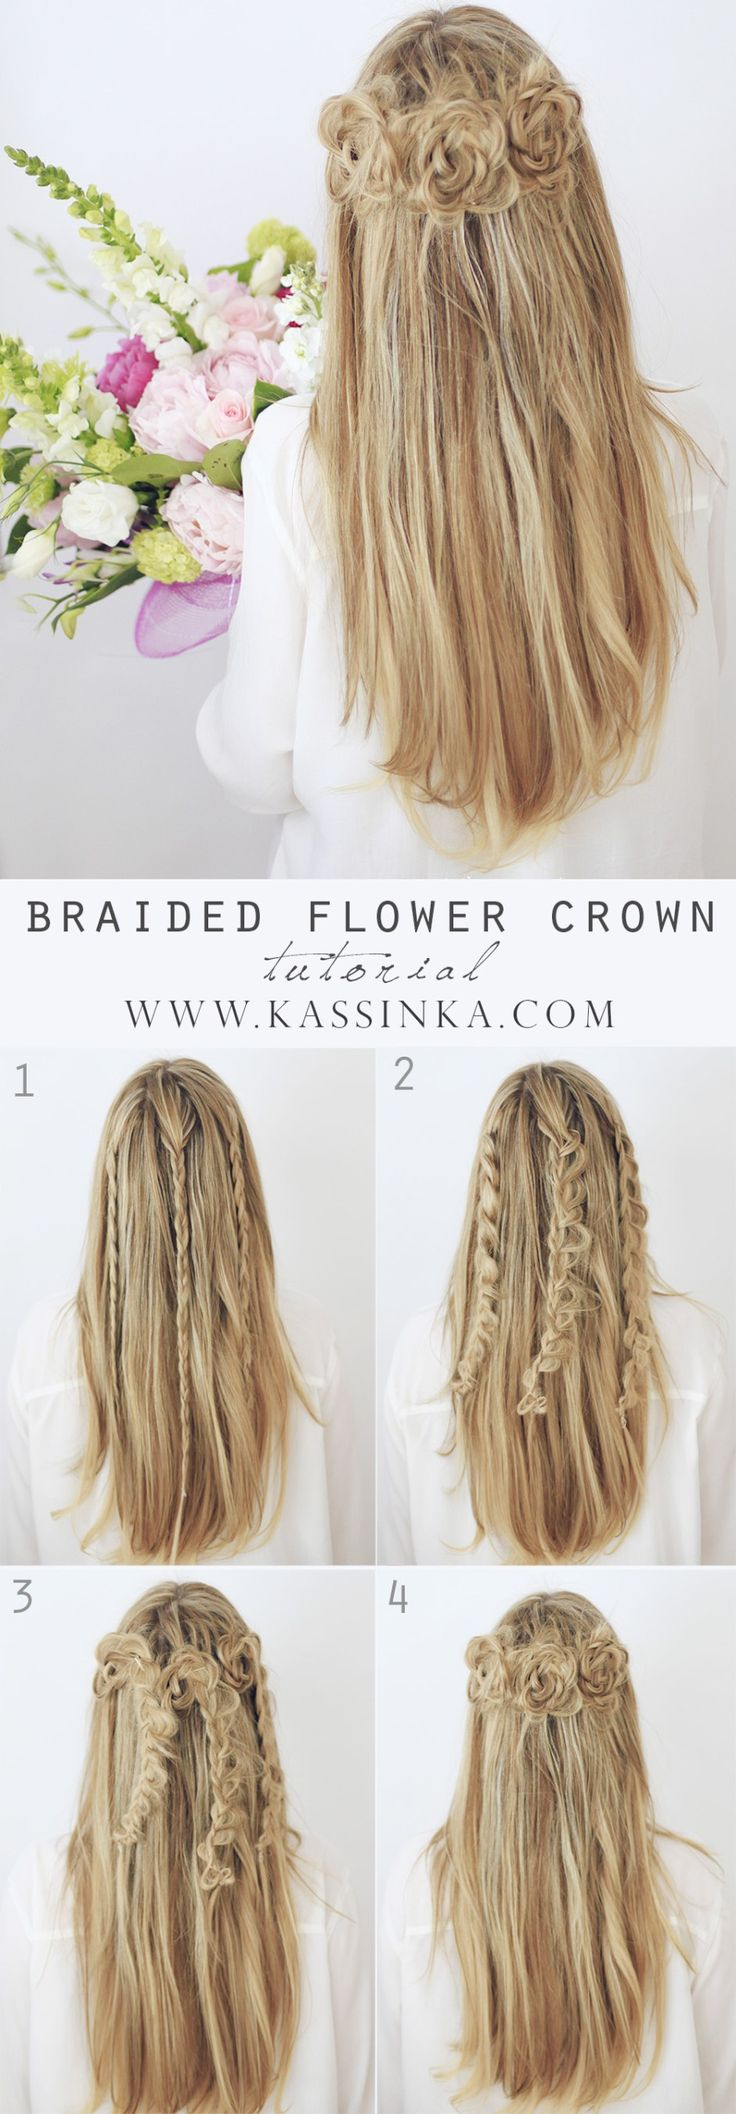 braided flower crown hair tutorial